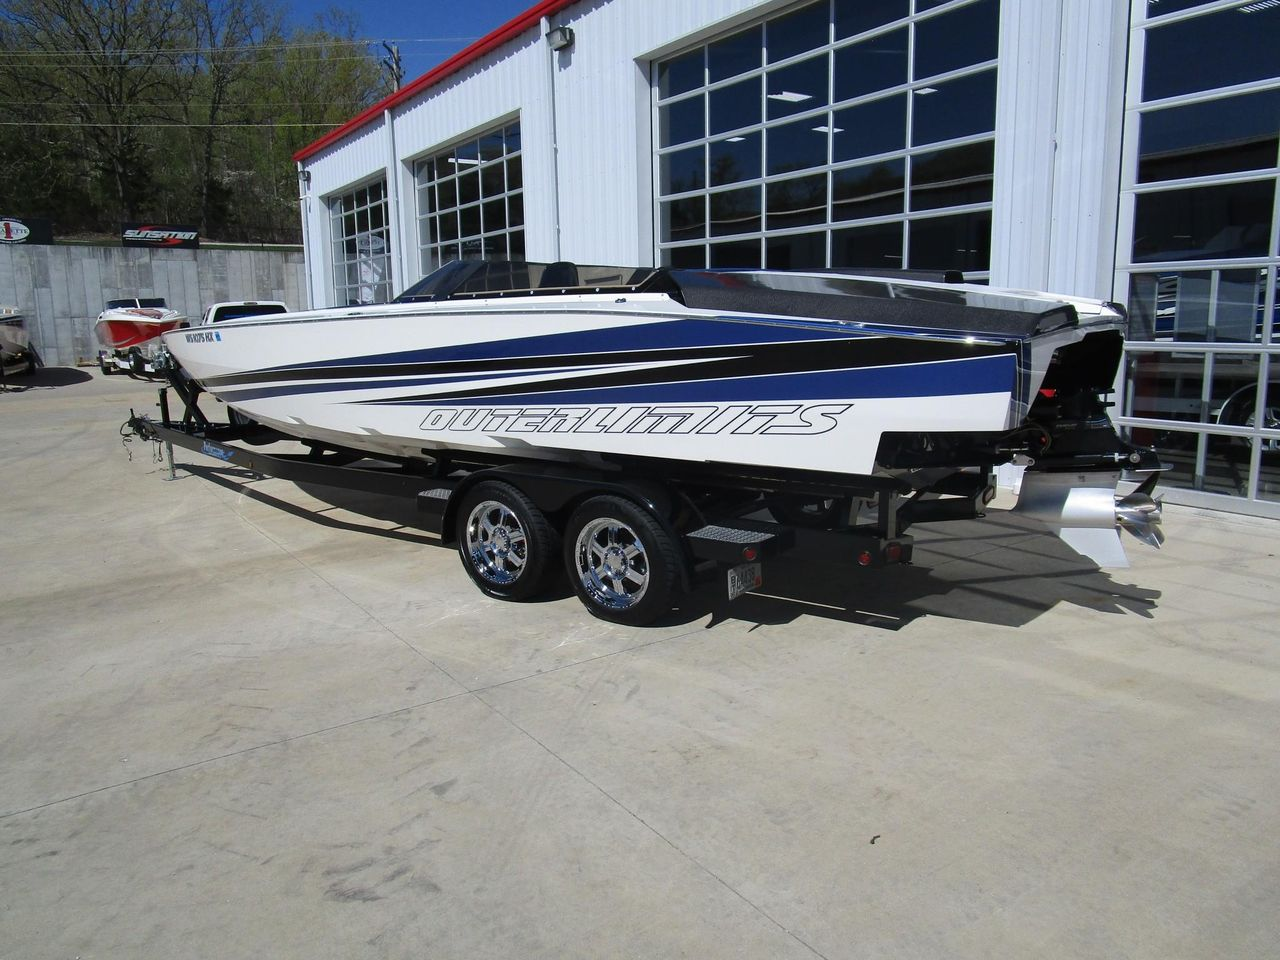 2012 Used Outerlimits SV29 High Performance Boat For Sale - $149,950